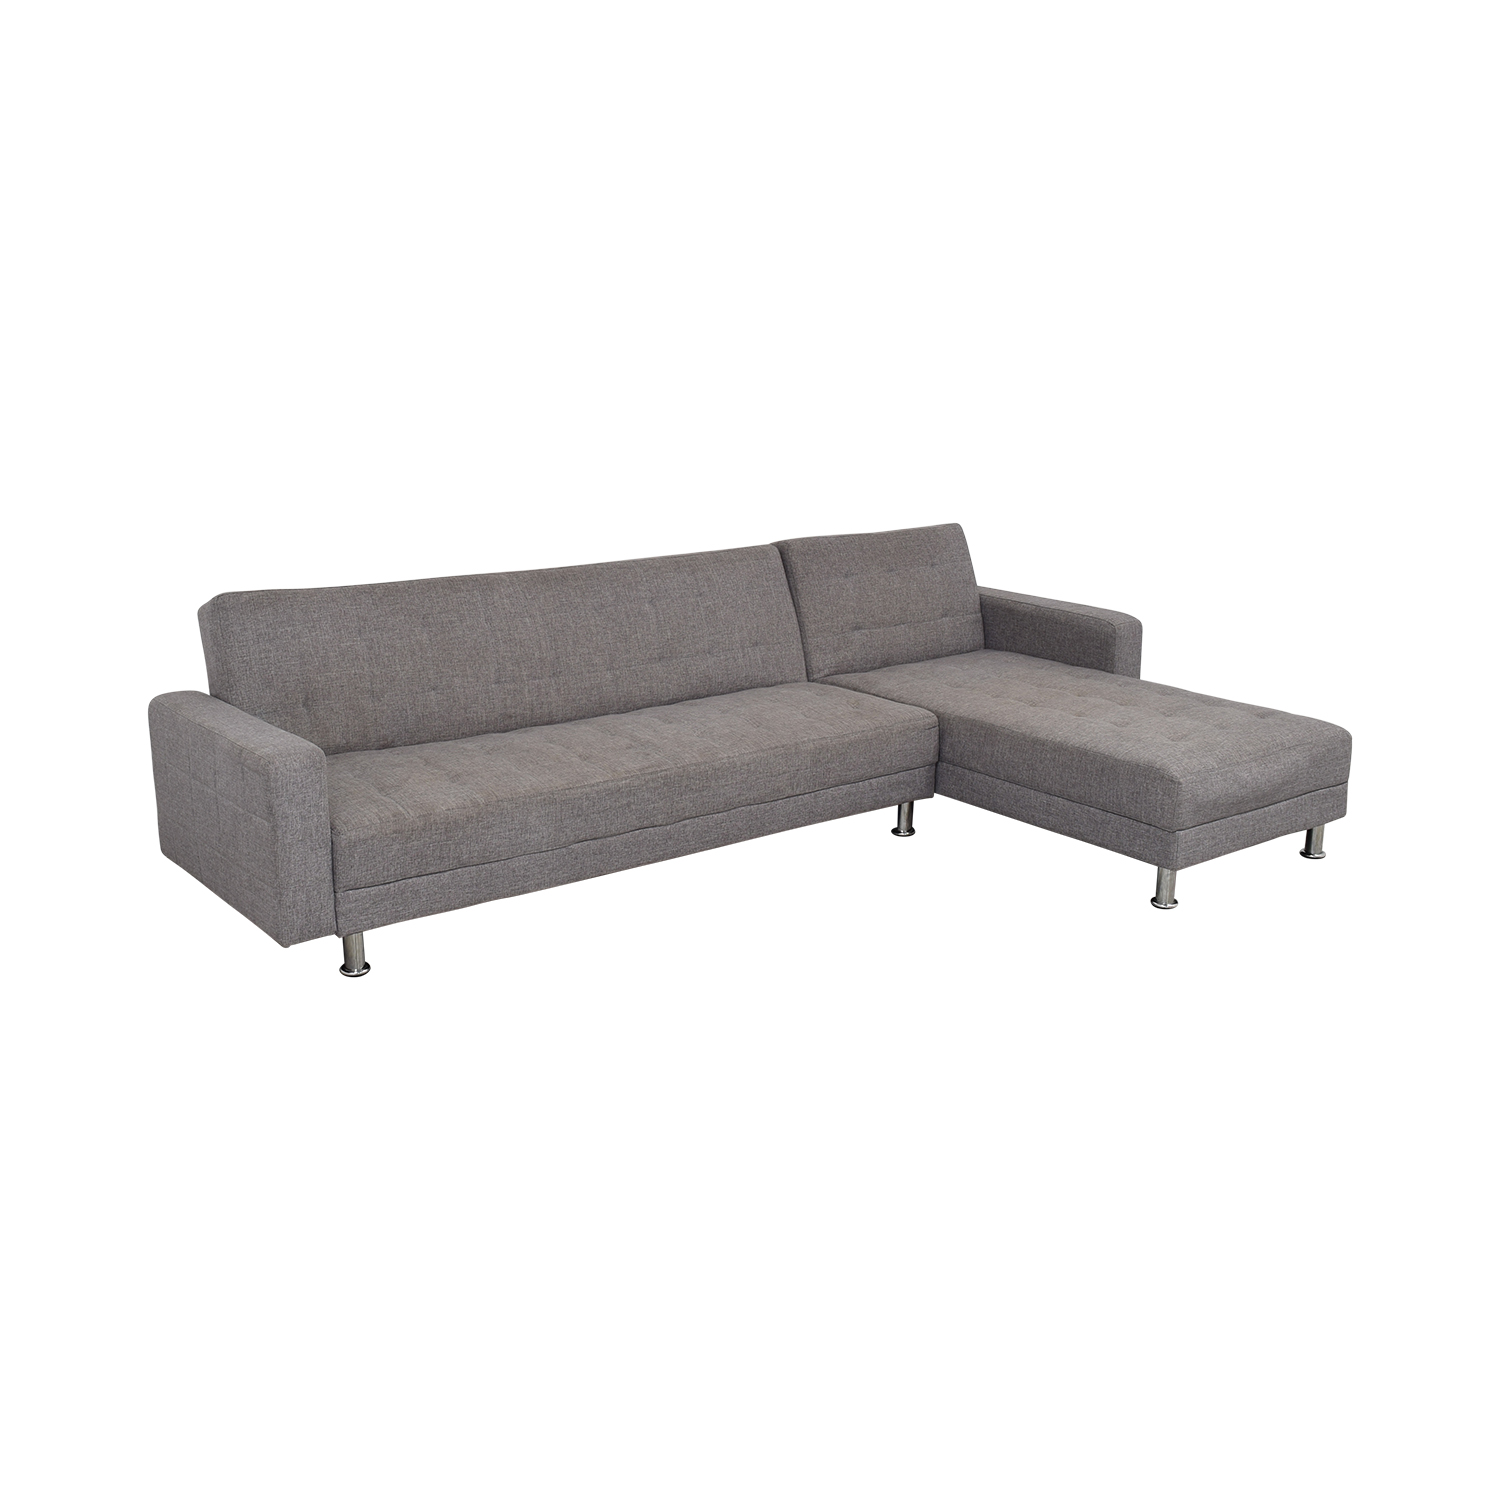 Gold Sparrow Frankfort Convertible Sectional Sofa Bed sale